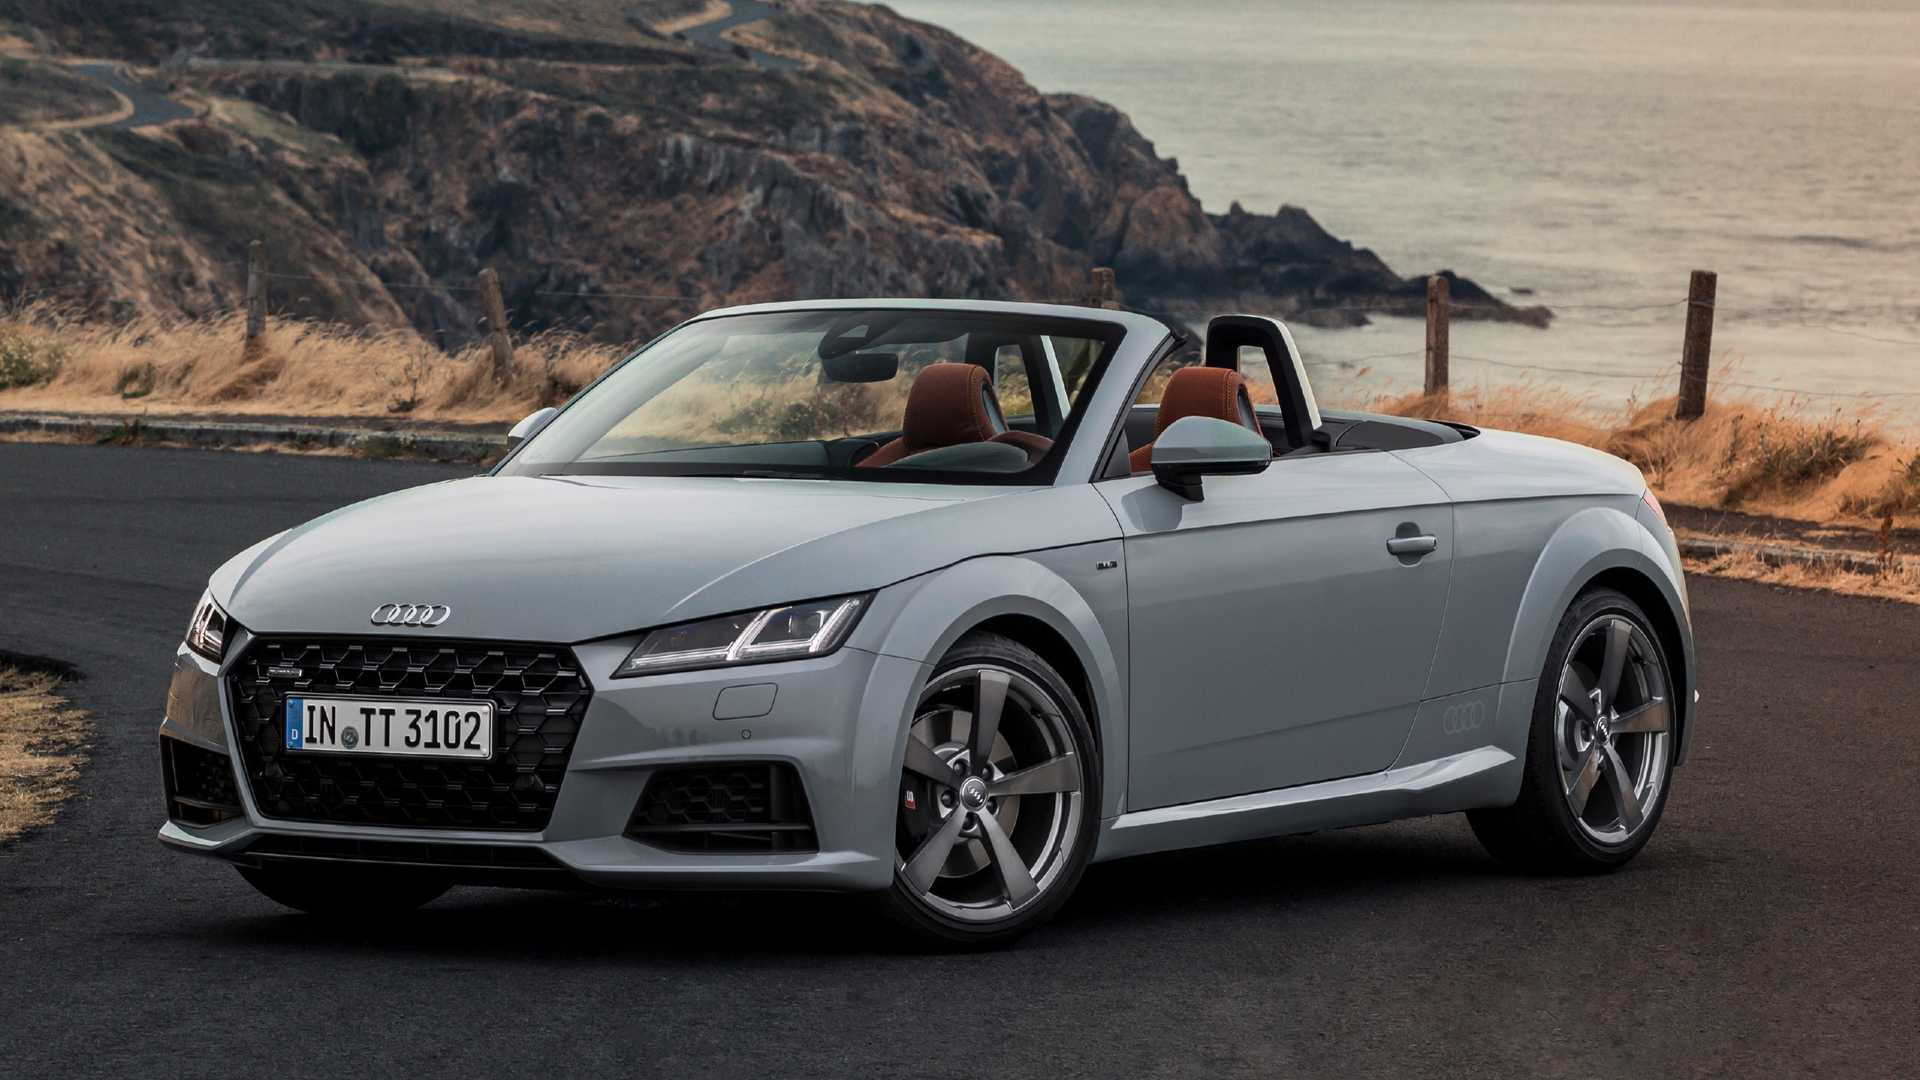 95 The The Audi Tt Convertible 2019 Concept Exterior by The Audi Tt Convertible 2019 Concept